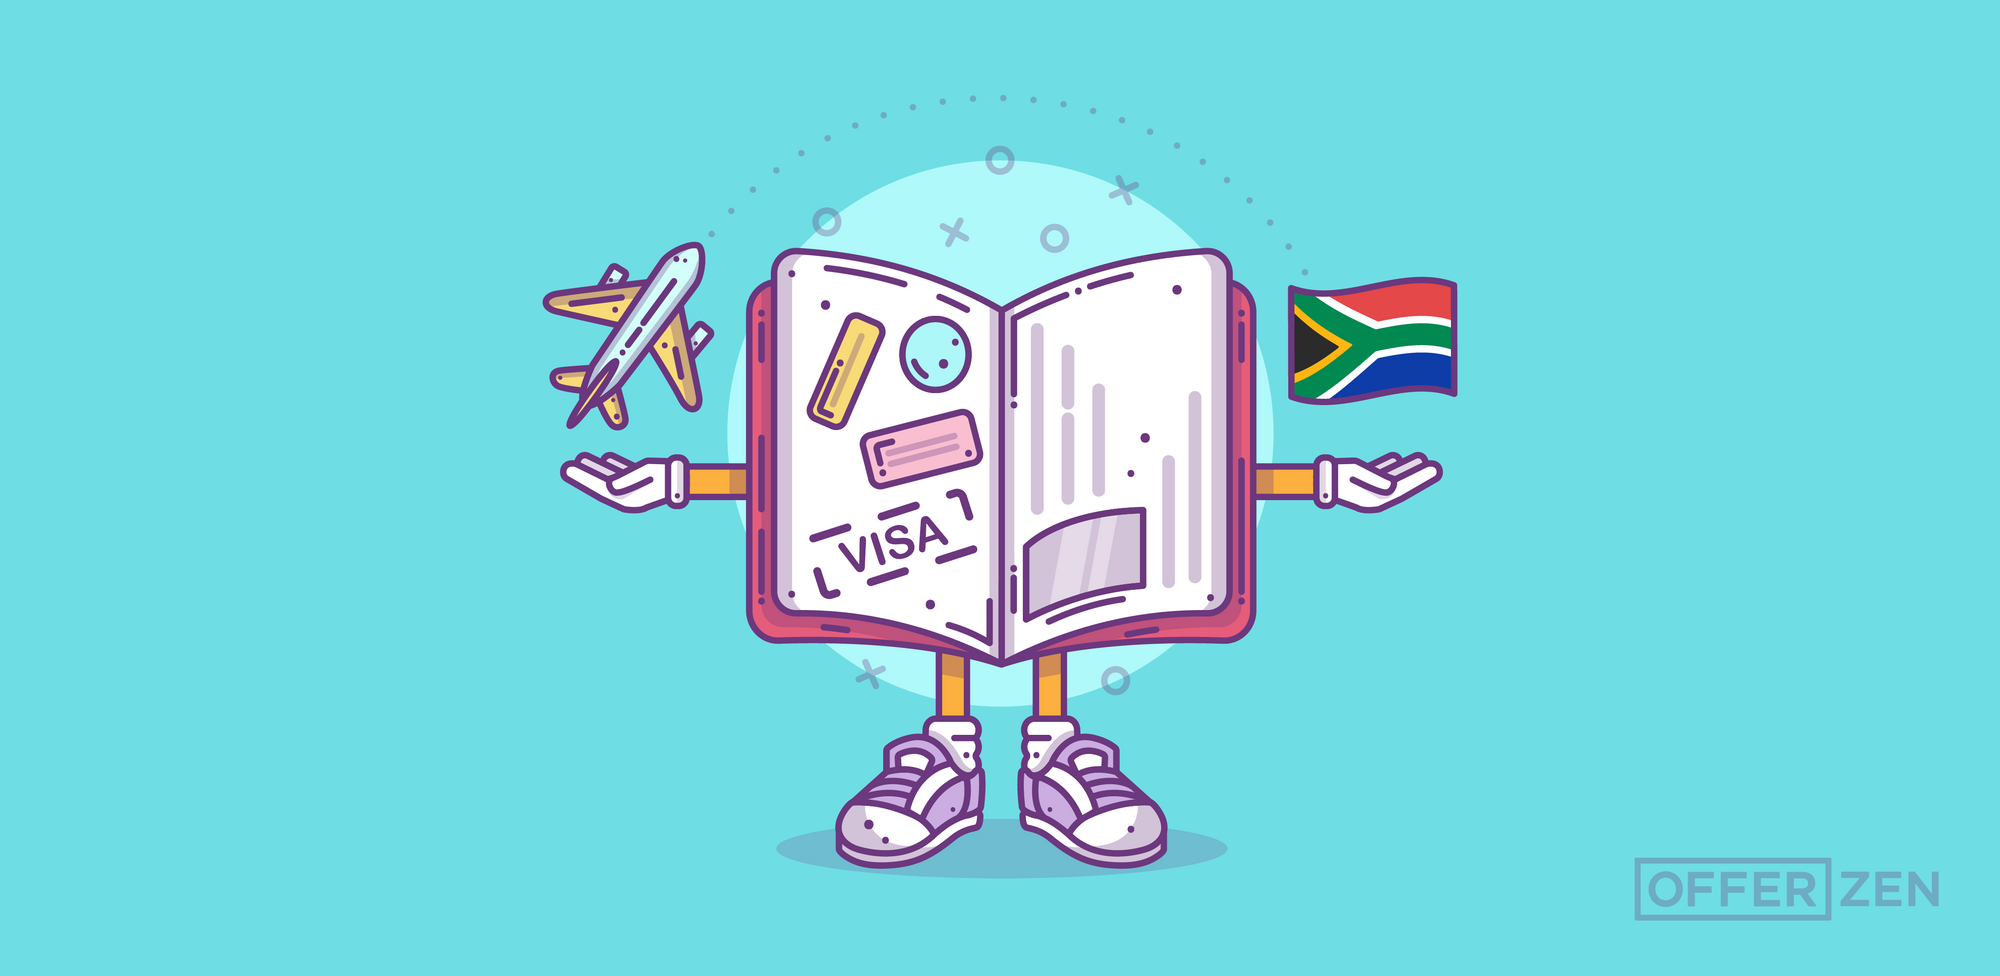 Heena_Visa-character-with-plane-and-flag_Here-s-What-I-Learnt-When-Applying-for-a-South-African-Critical-Skills-Visa_Inner-Article-Image-02